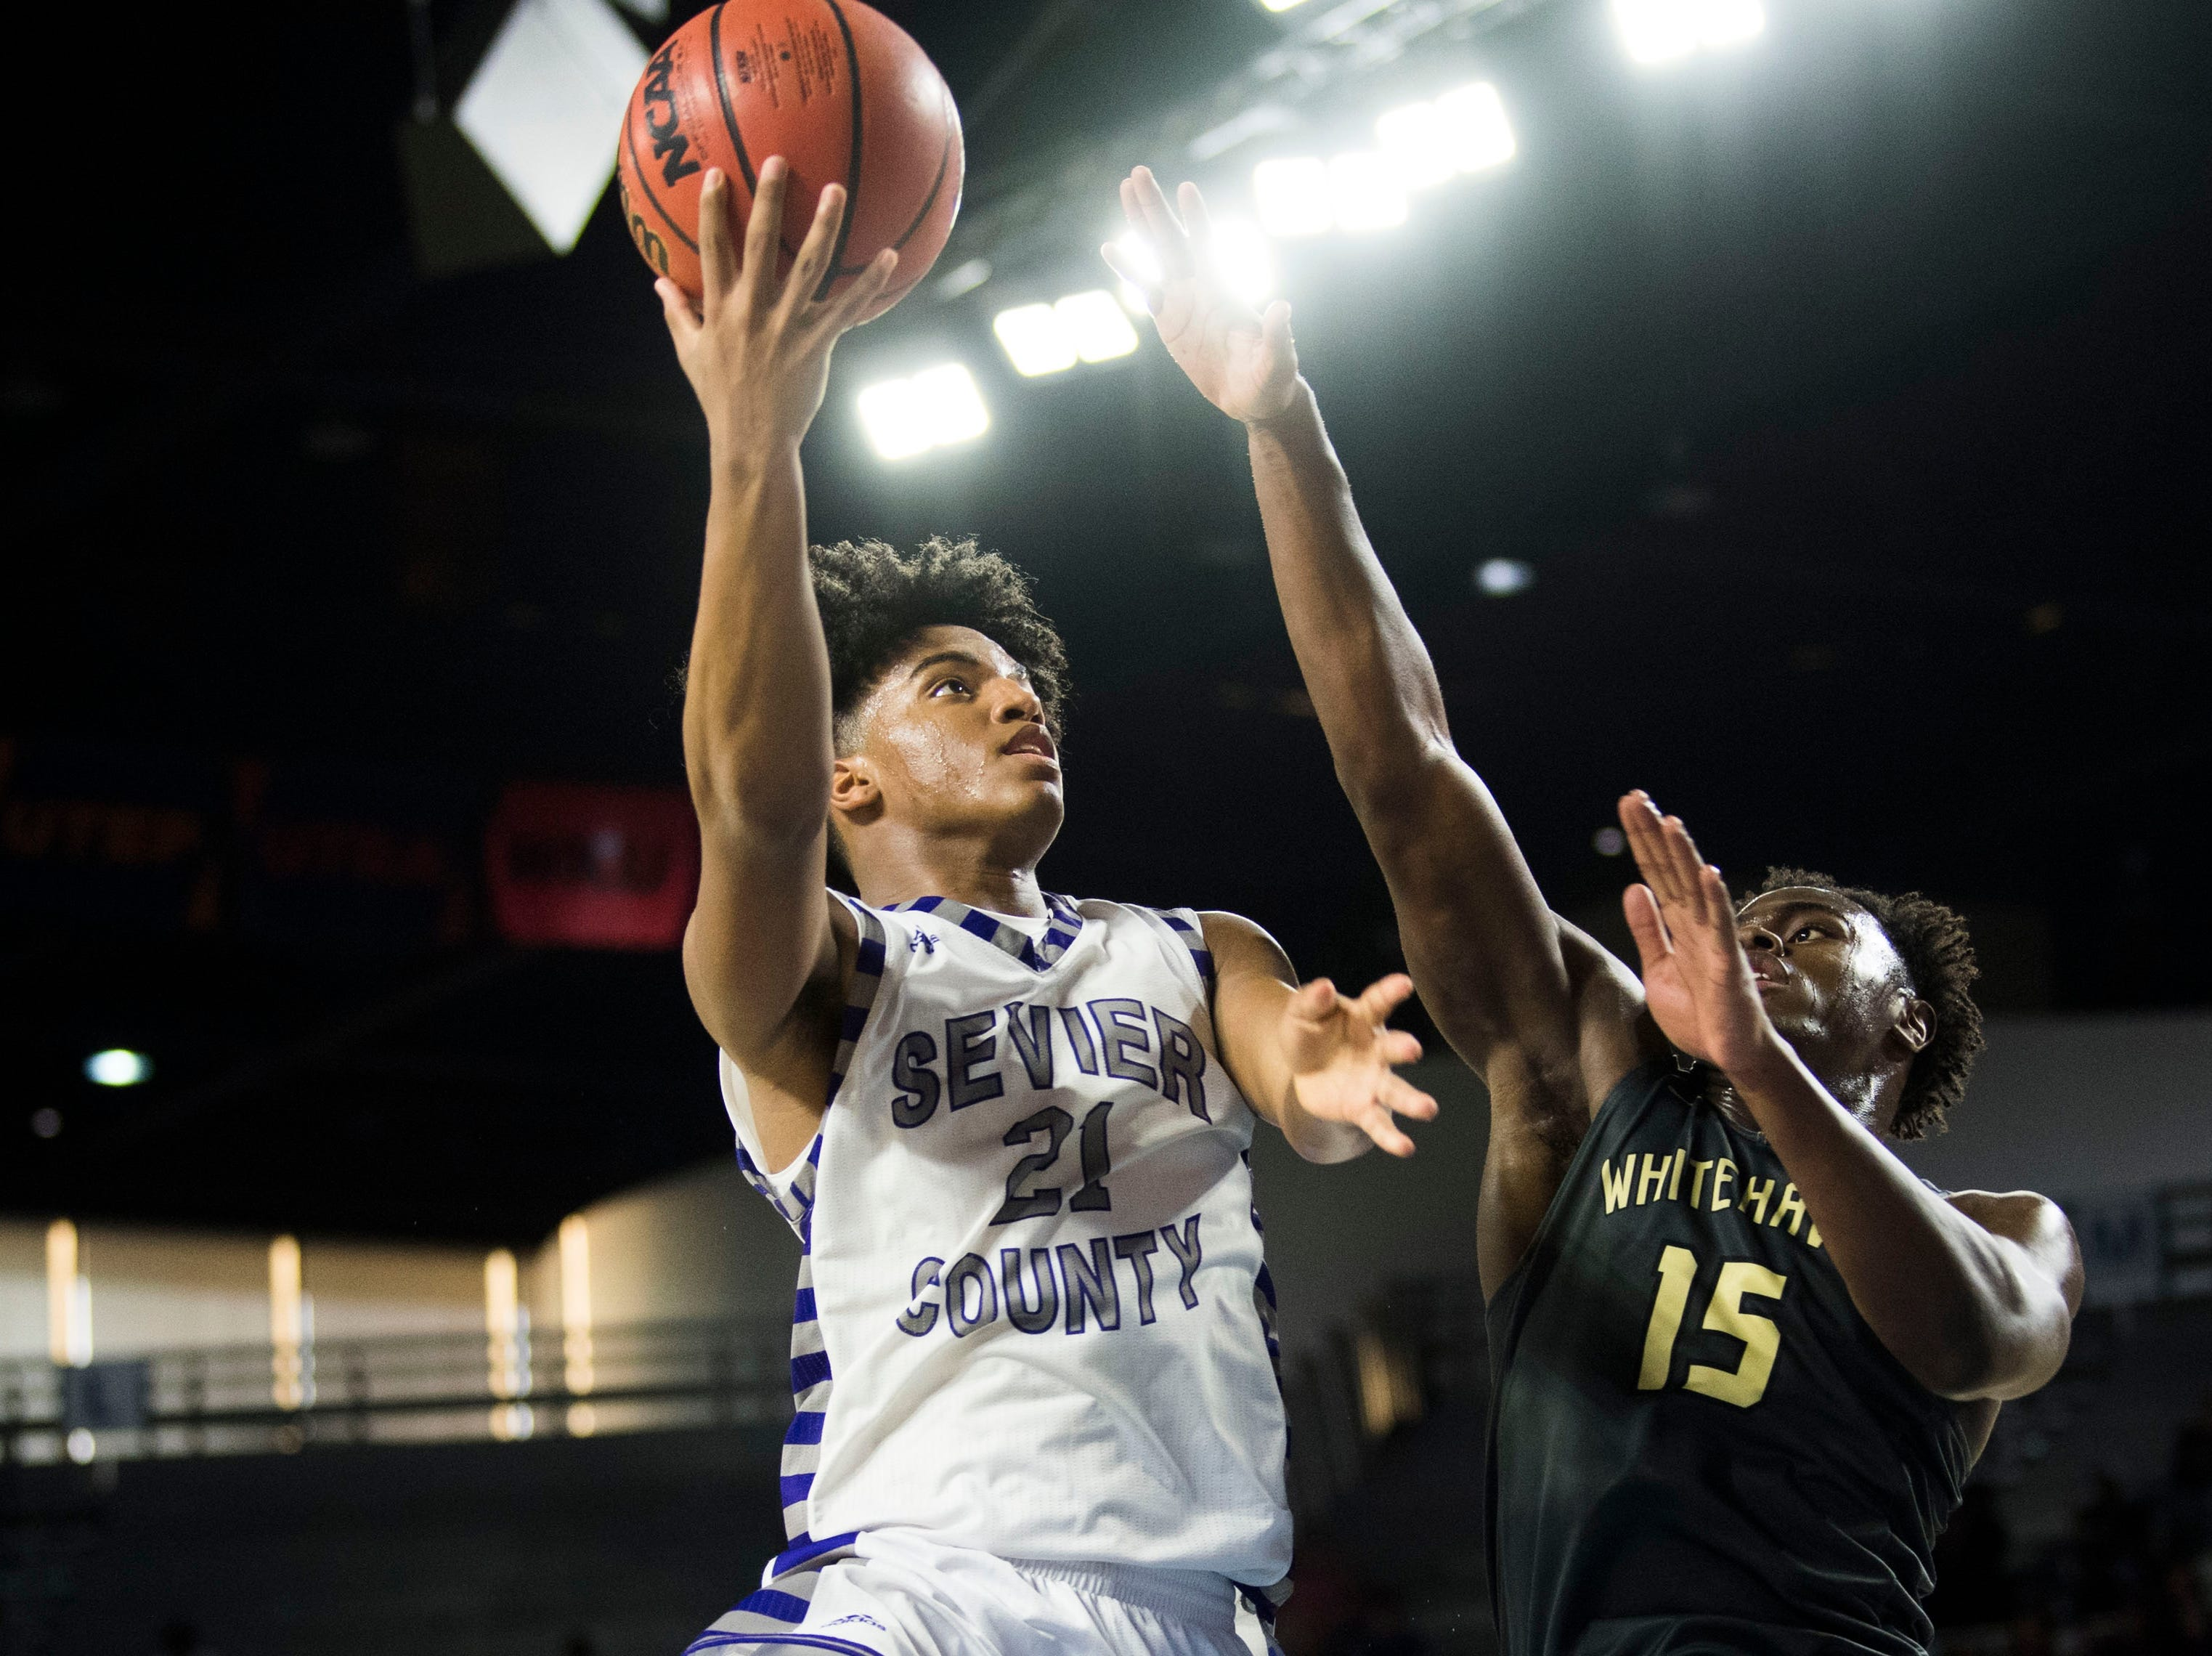 Sevier County's Cam Burden (21) takes a shot while defended by Whitehaven's Keveon Mullins (15) during a TSSAA AAA state quarterfinal game between Sevier County and Whitehaven at the Murphy Center in Murfreesboro, Wednesday, March 13, 2019.